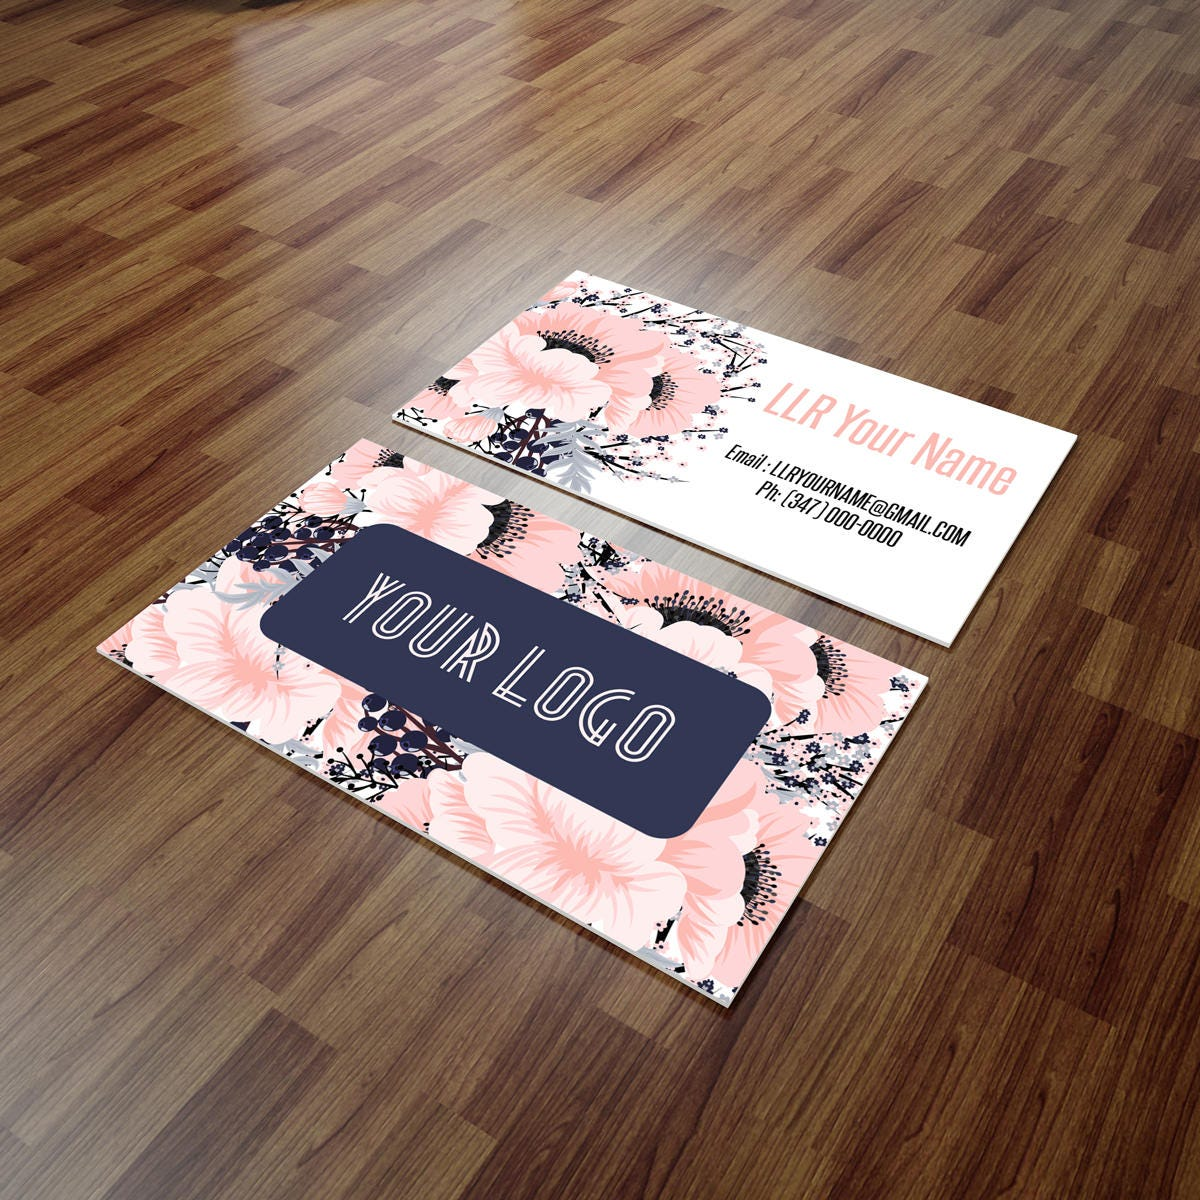 Llr business cards printed both sides lula cards fashion llr business cards printed both sides lula cards fashion retailer business cards for popups reheart Gallery